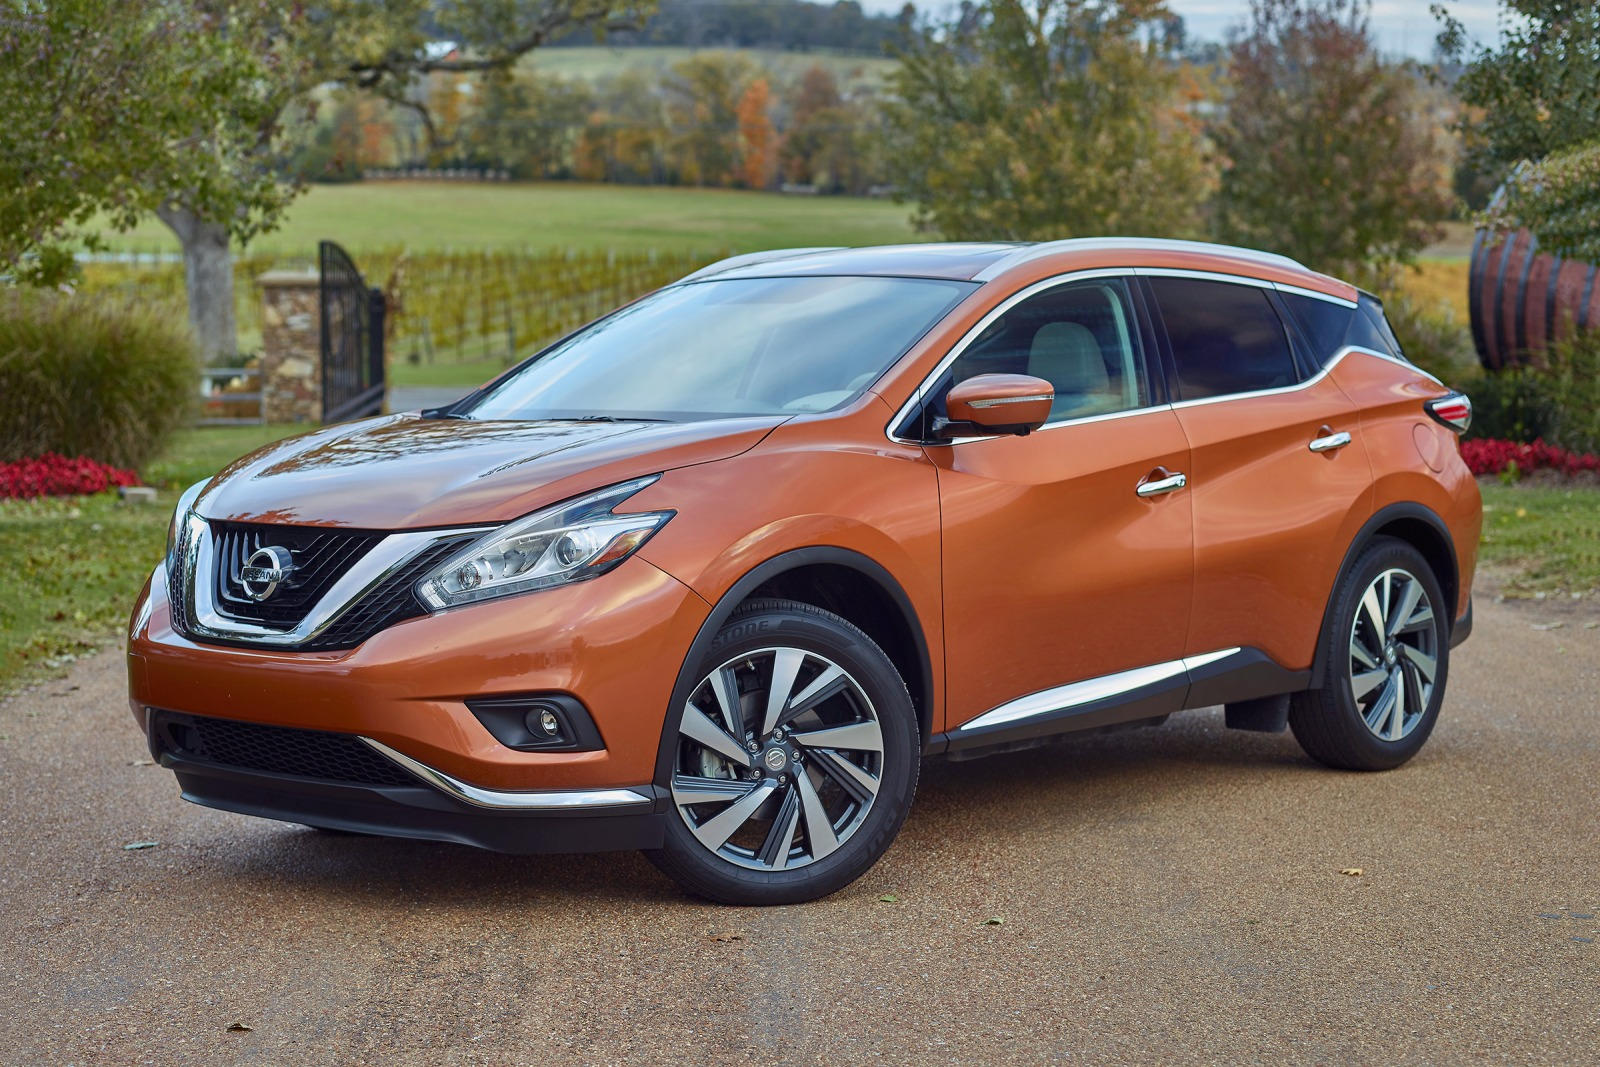 2018 Nissan Murano SUV Review, Trims, Specs and Price - CarBuzz